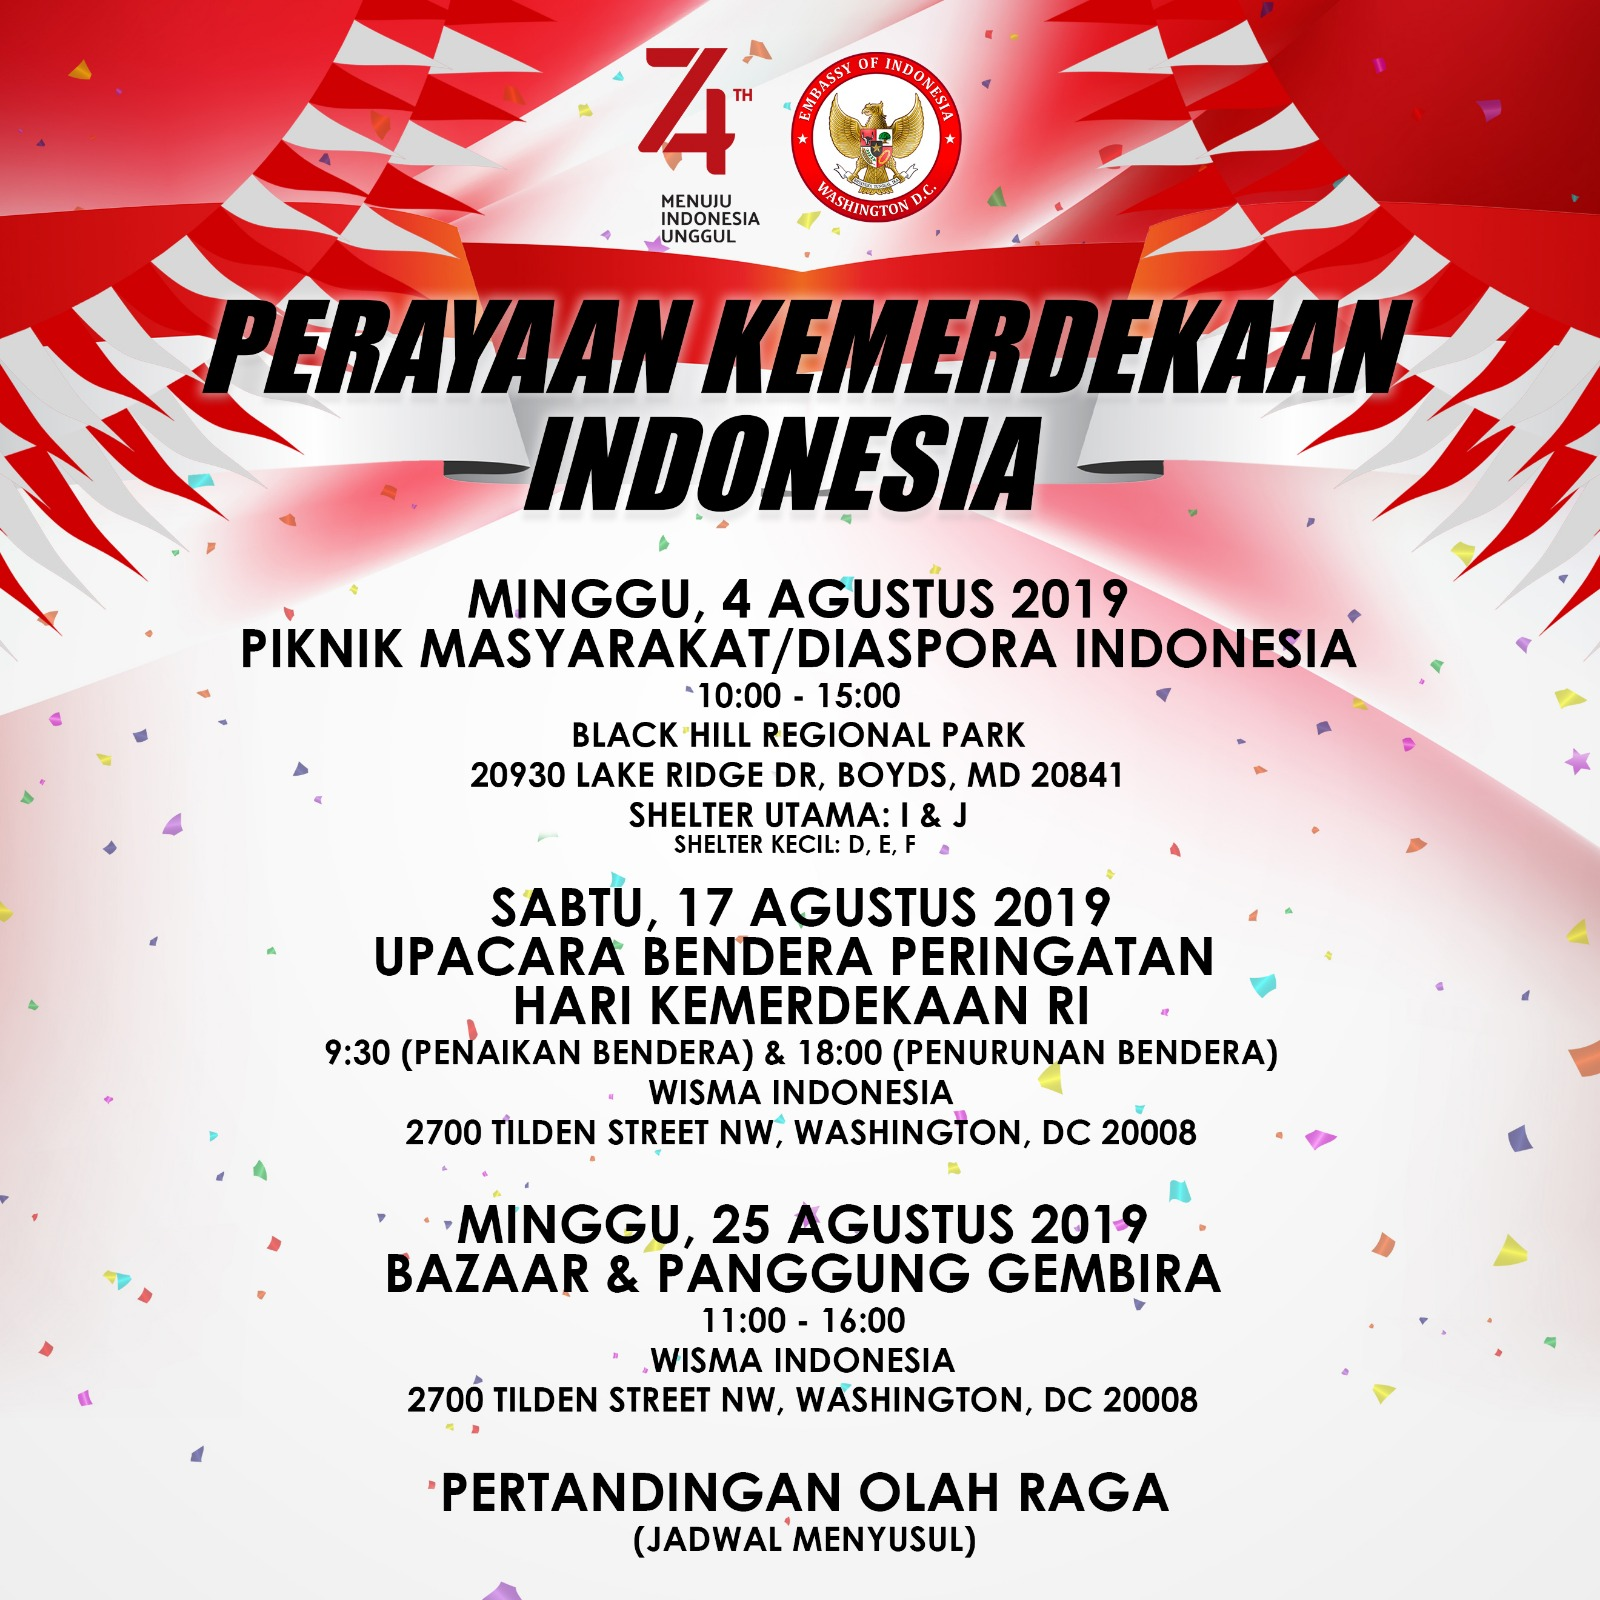 Pertandingan Futsal Perayaan HUT ke-74 RI – Embassy of the Republic of Indonesia | Washington D.C.